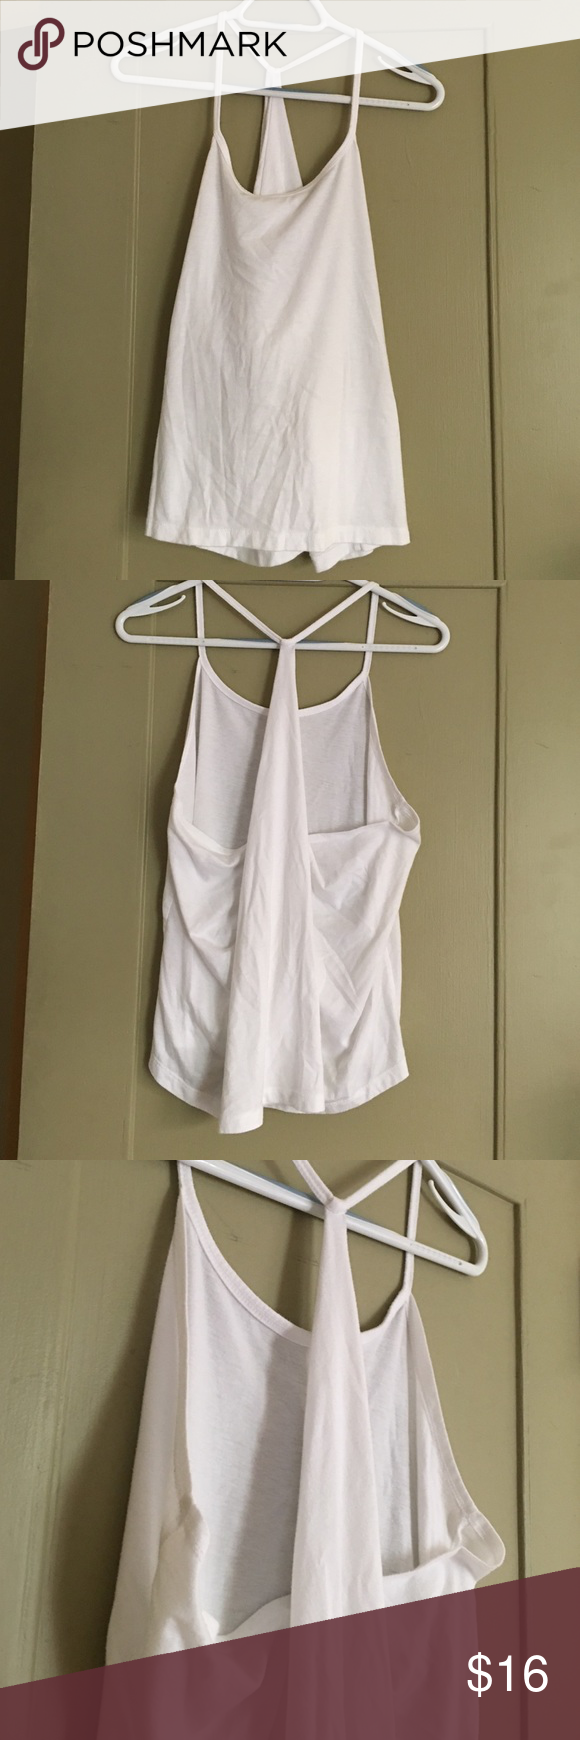 Fabletics Neema Tank Cute tank from Fabletics. In excellent condition. Also available in black. Check out all my listings. Fabletics Tops Tank Tops